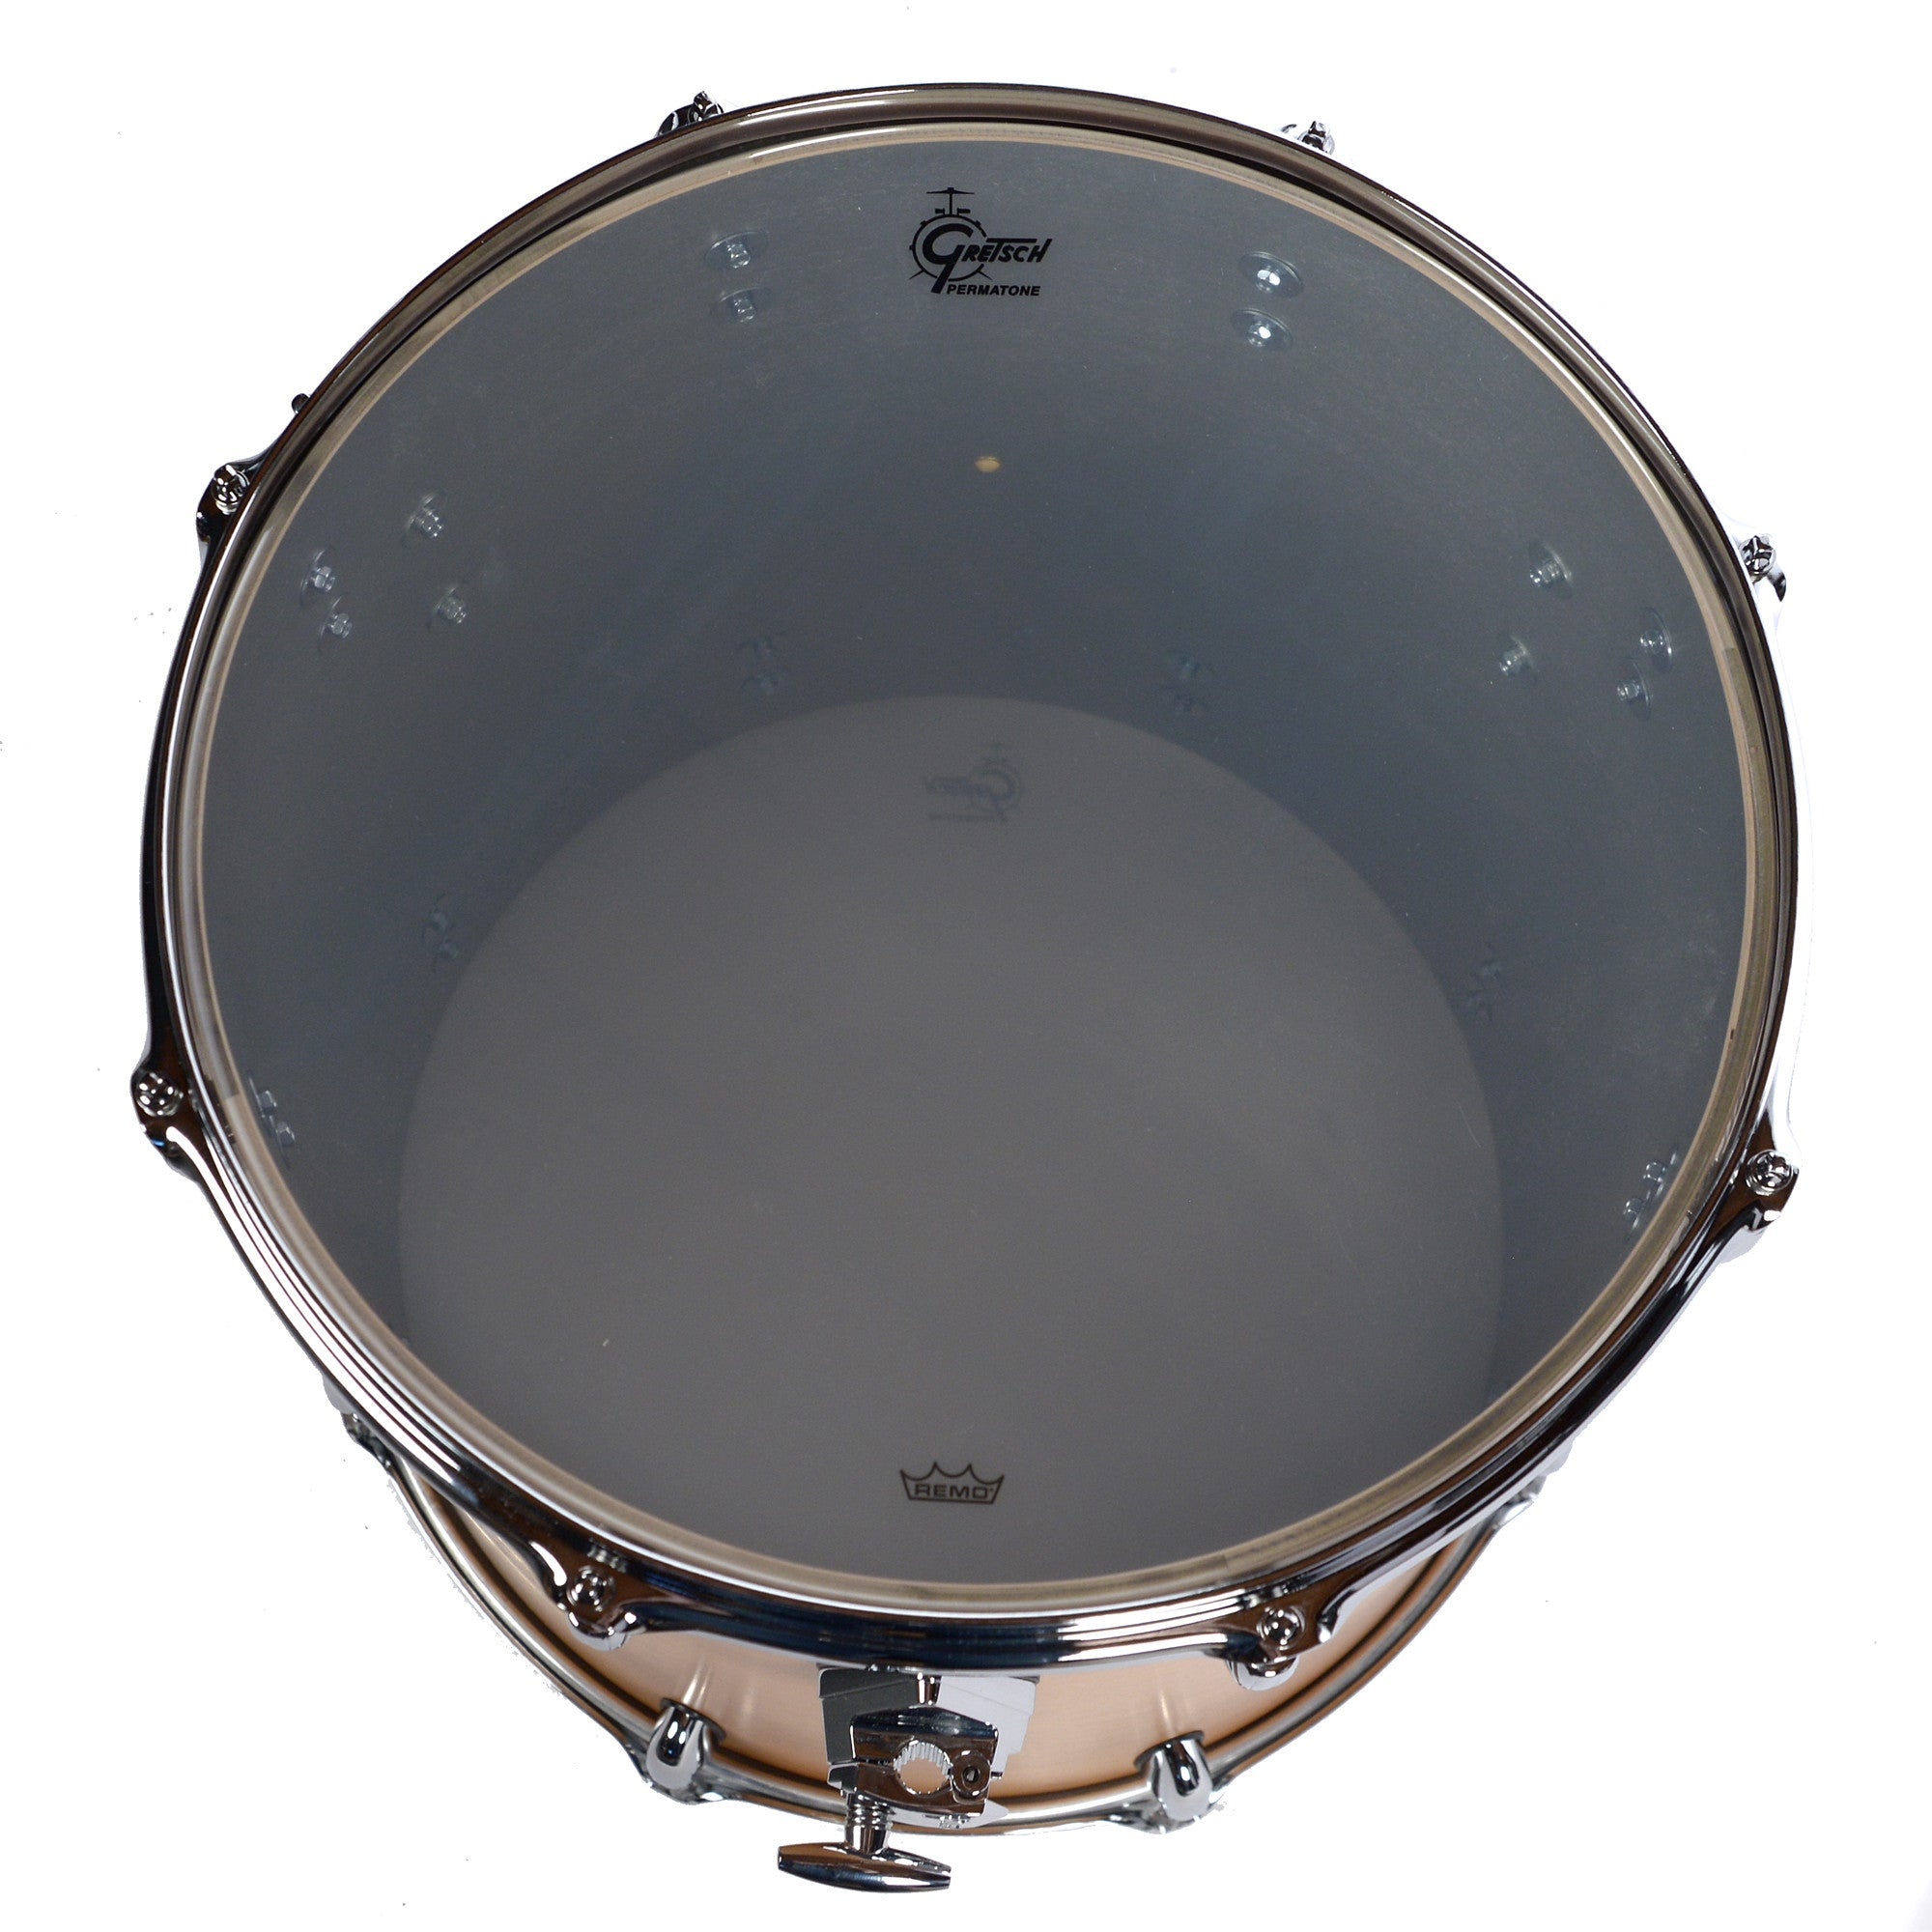 Gretsch broadkaster 16x16 floor tom standard build satin for 16 x 12 floor tom